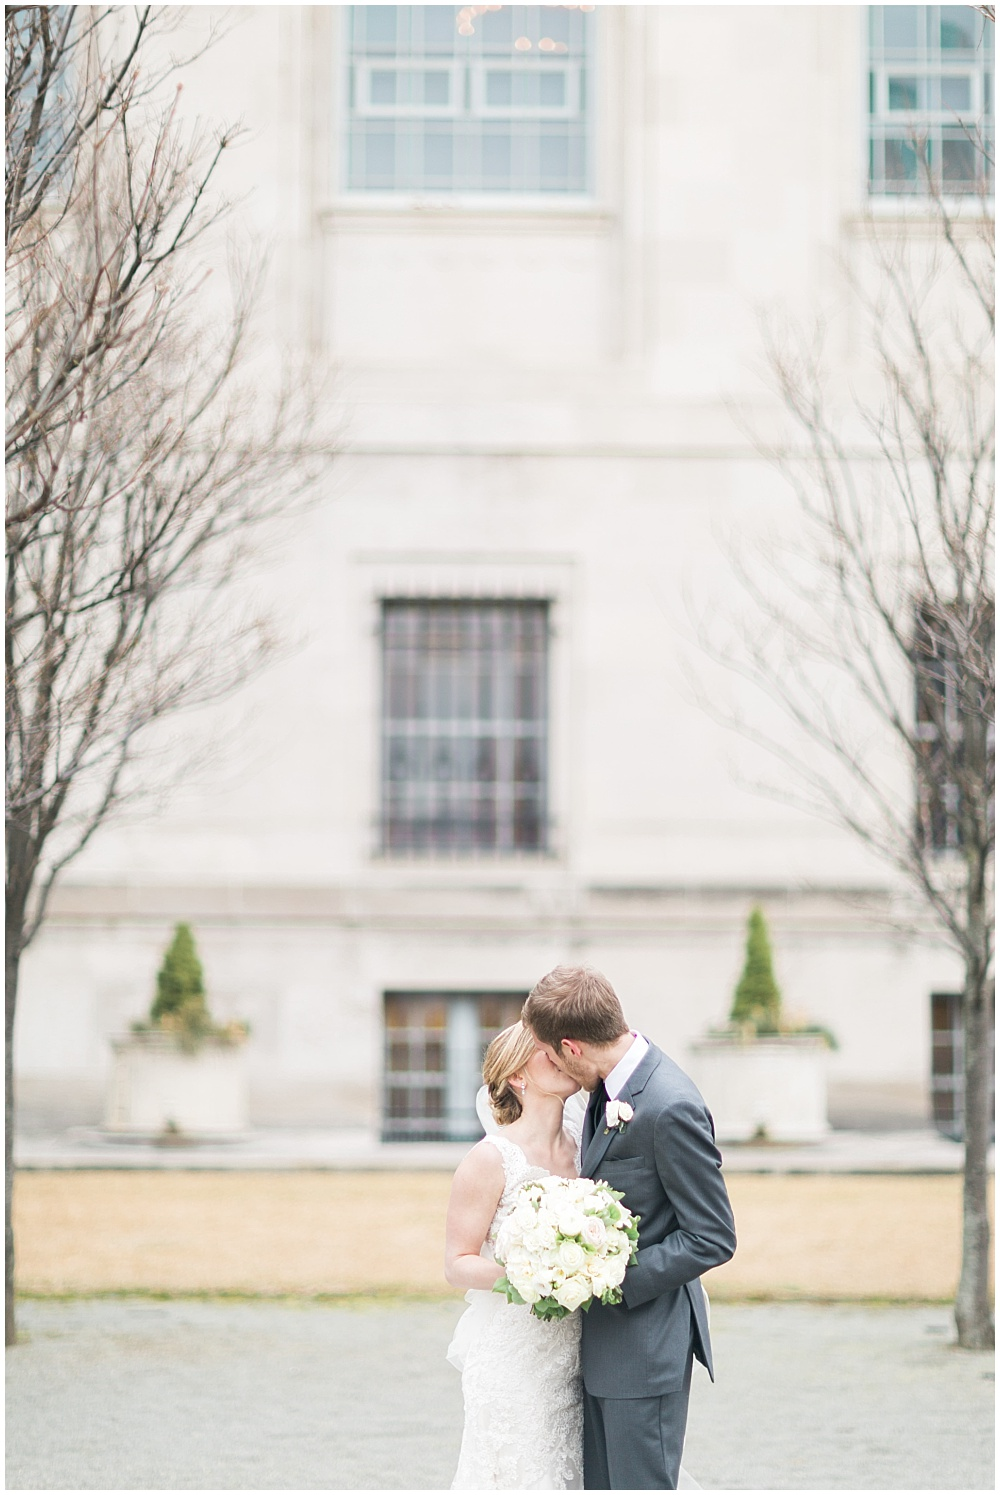 Bride + Groom Kiss | Downtown Indianapolis and CANAL 337 Wedding by Cory + Jackie Photography & Jessica Dum Wedding Coordination